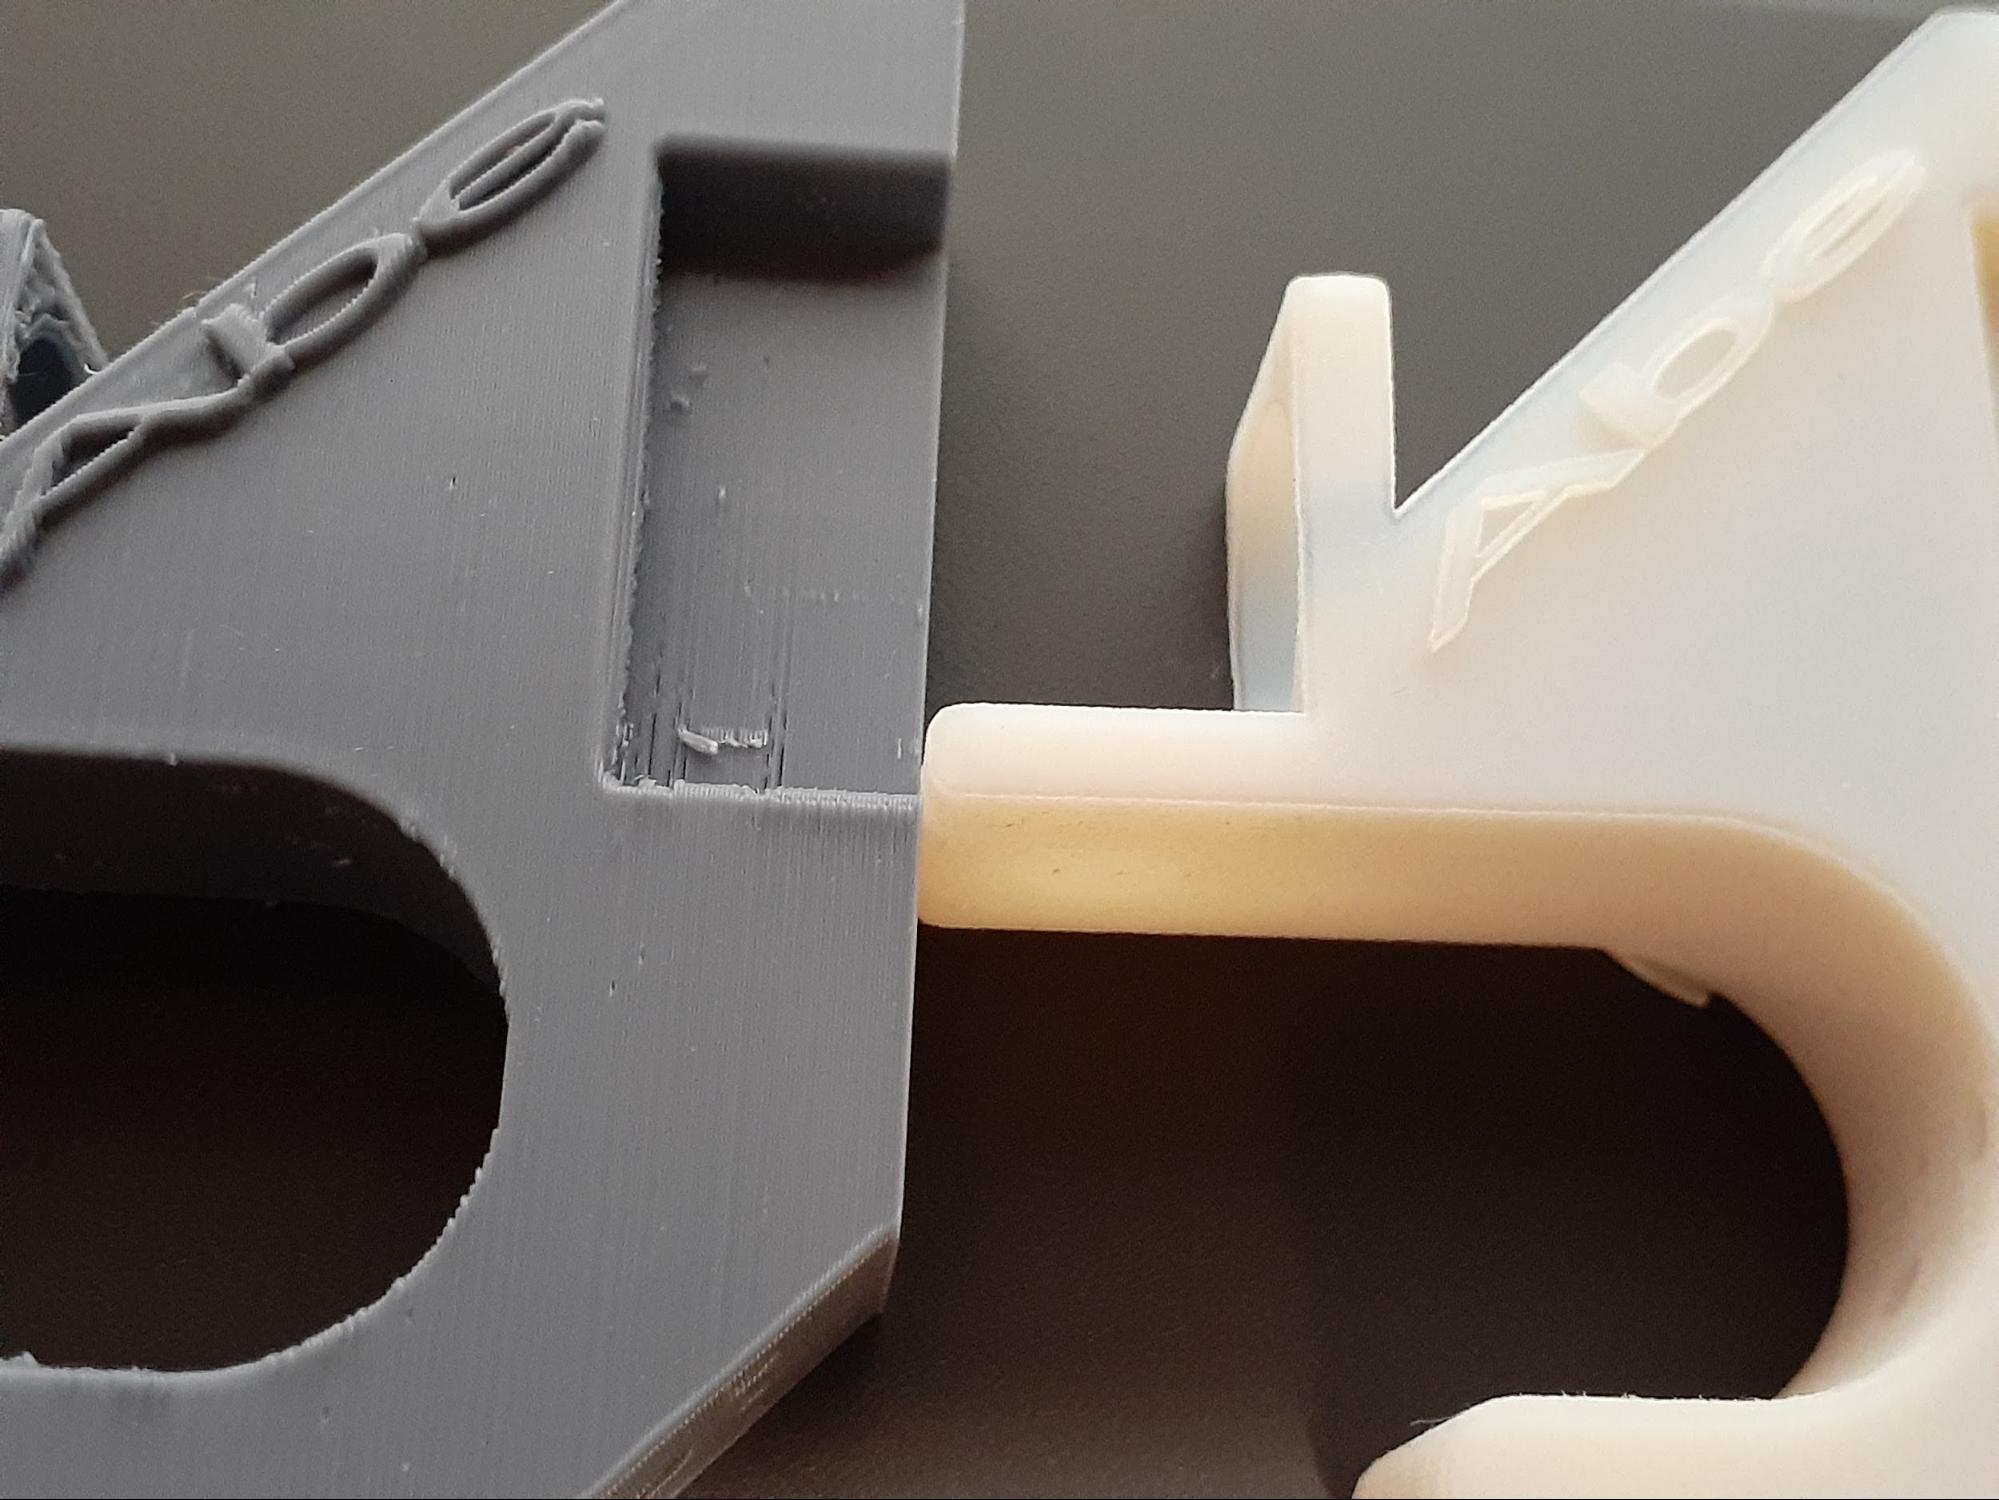 The nickname 'Abe' is easily recognizable in both 3D print materials